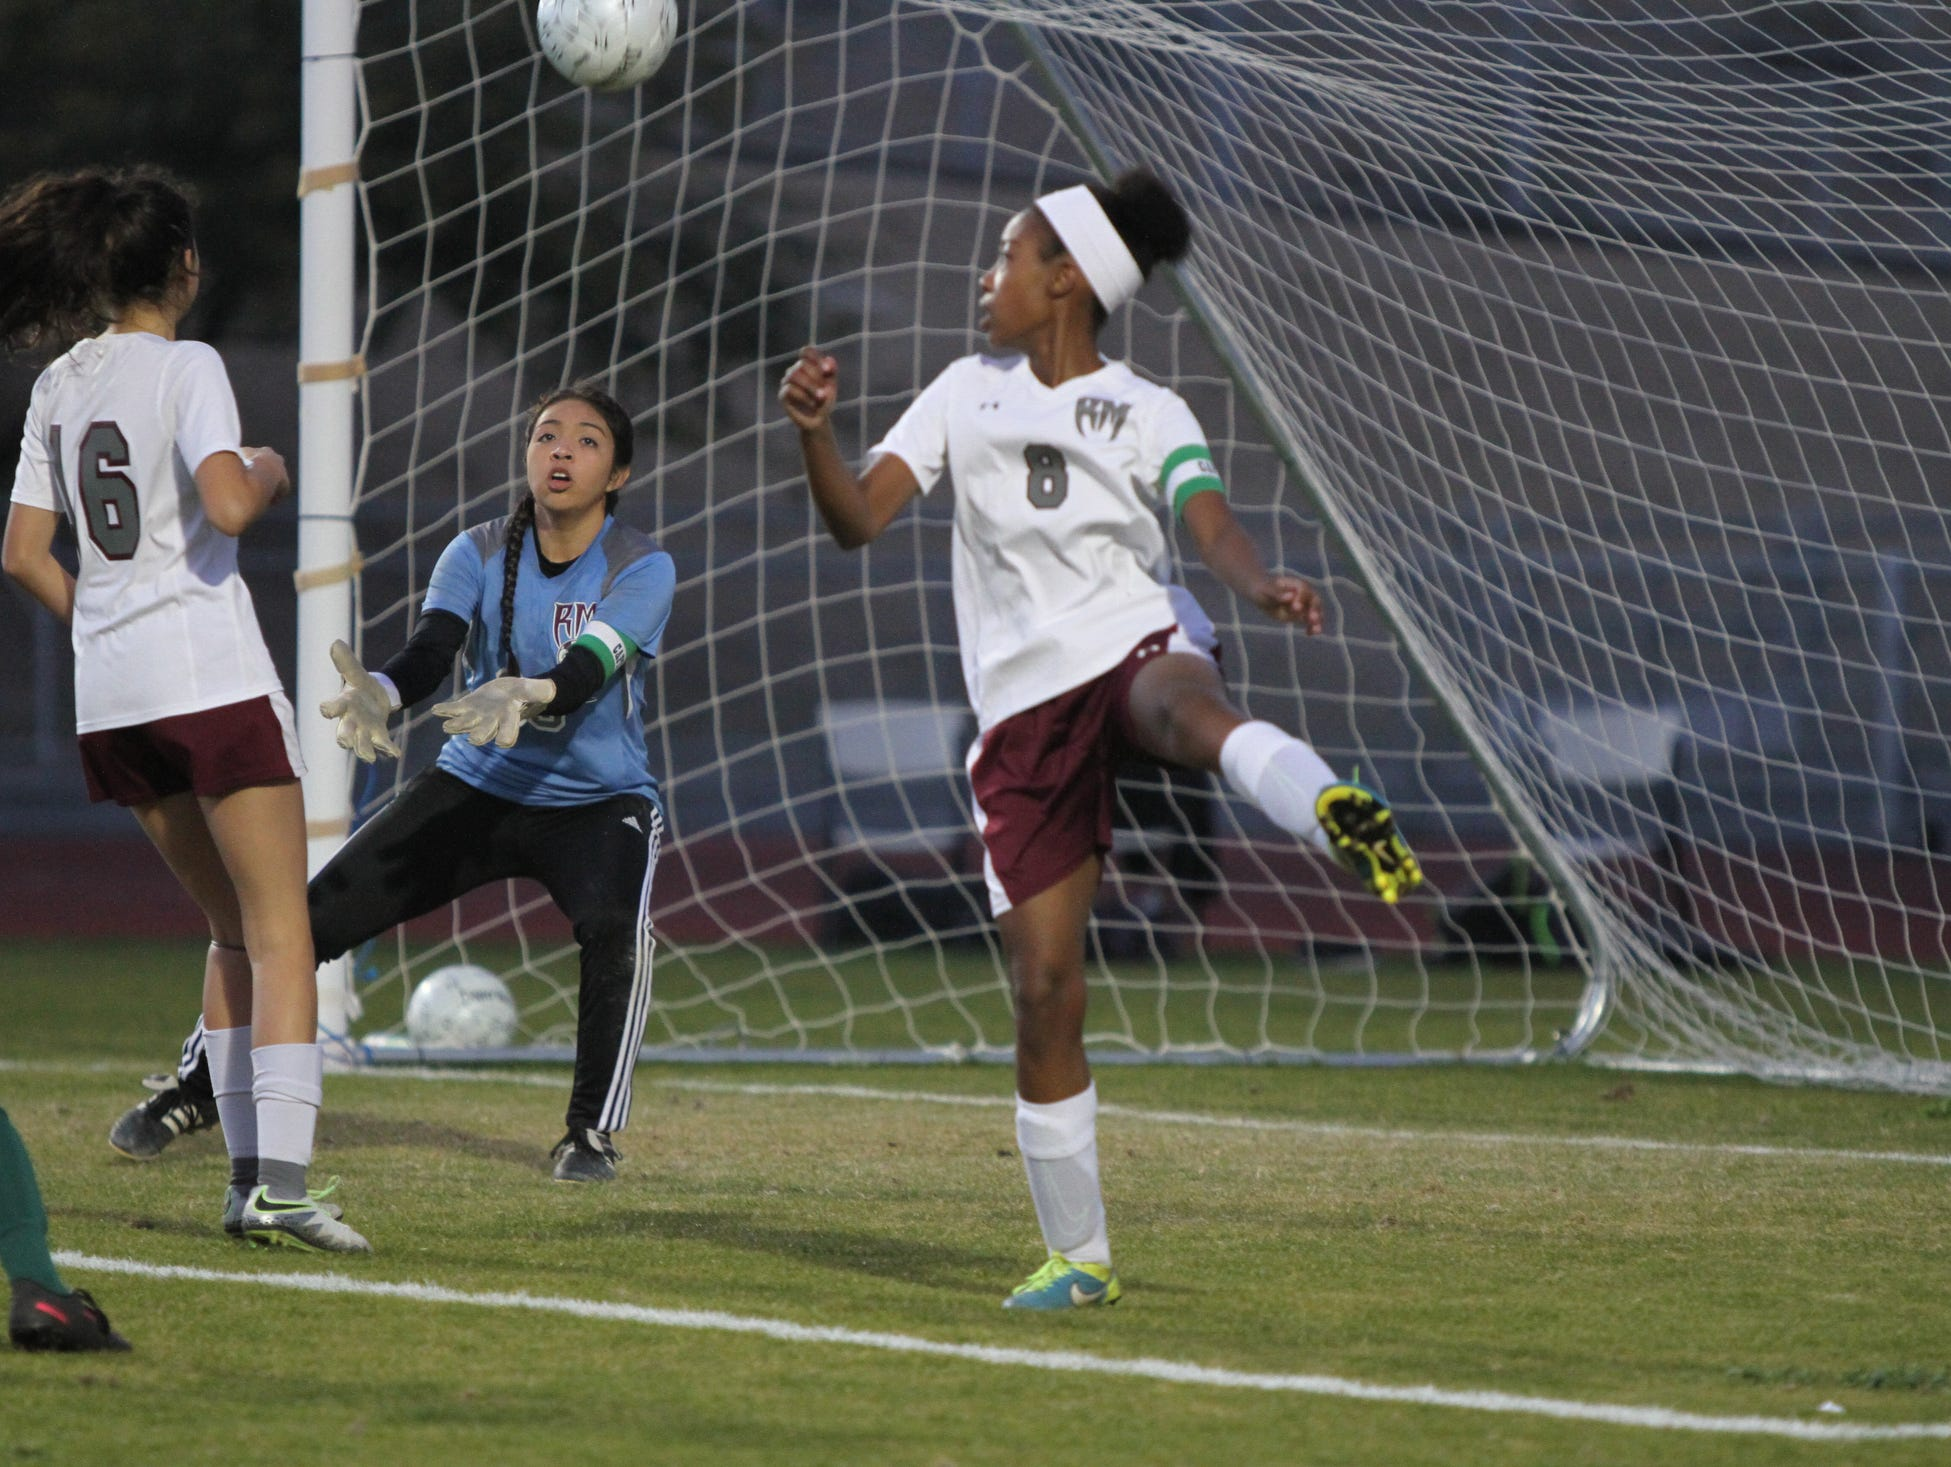 Rancho Mirage's goalkeeper Jasmin Sterling eyes the ball during the game against Coachella Valley in Rancho Mirage on Thursday, January 19, 2017. Rancho Mirage won.